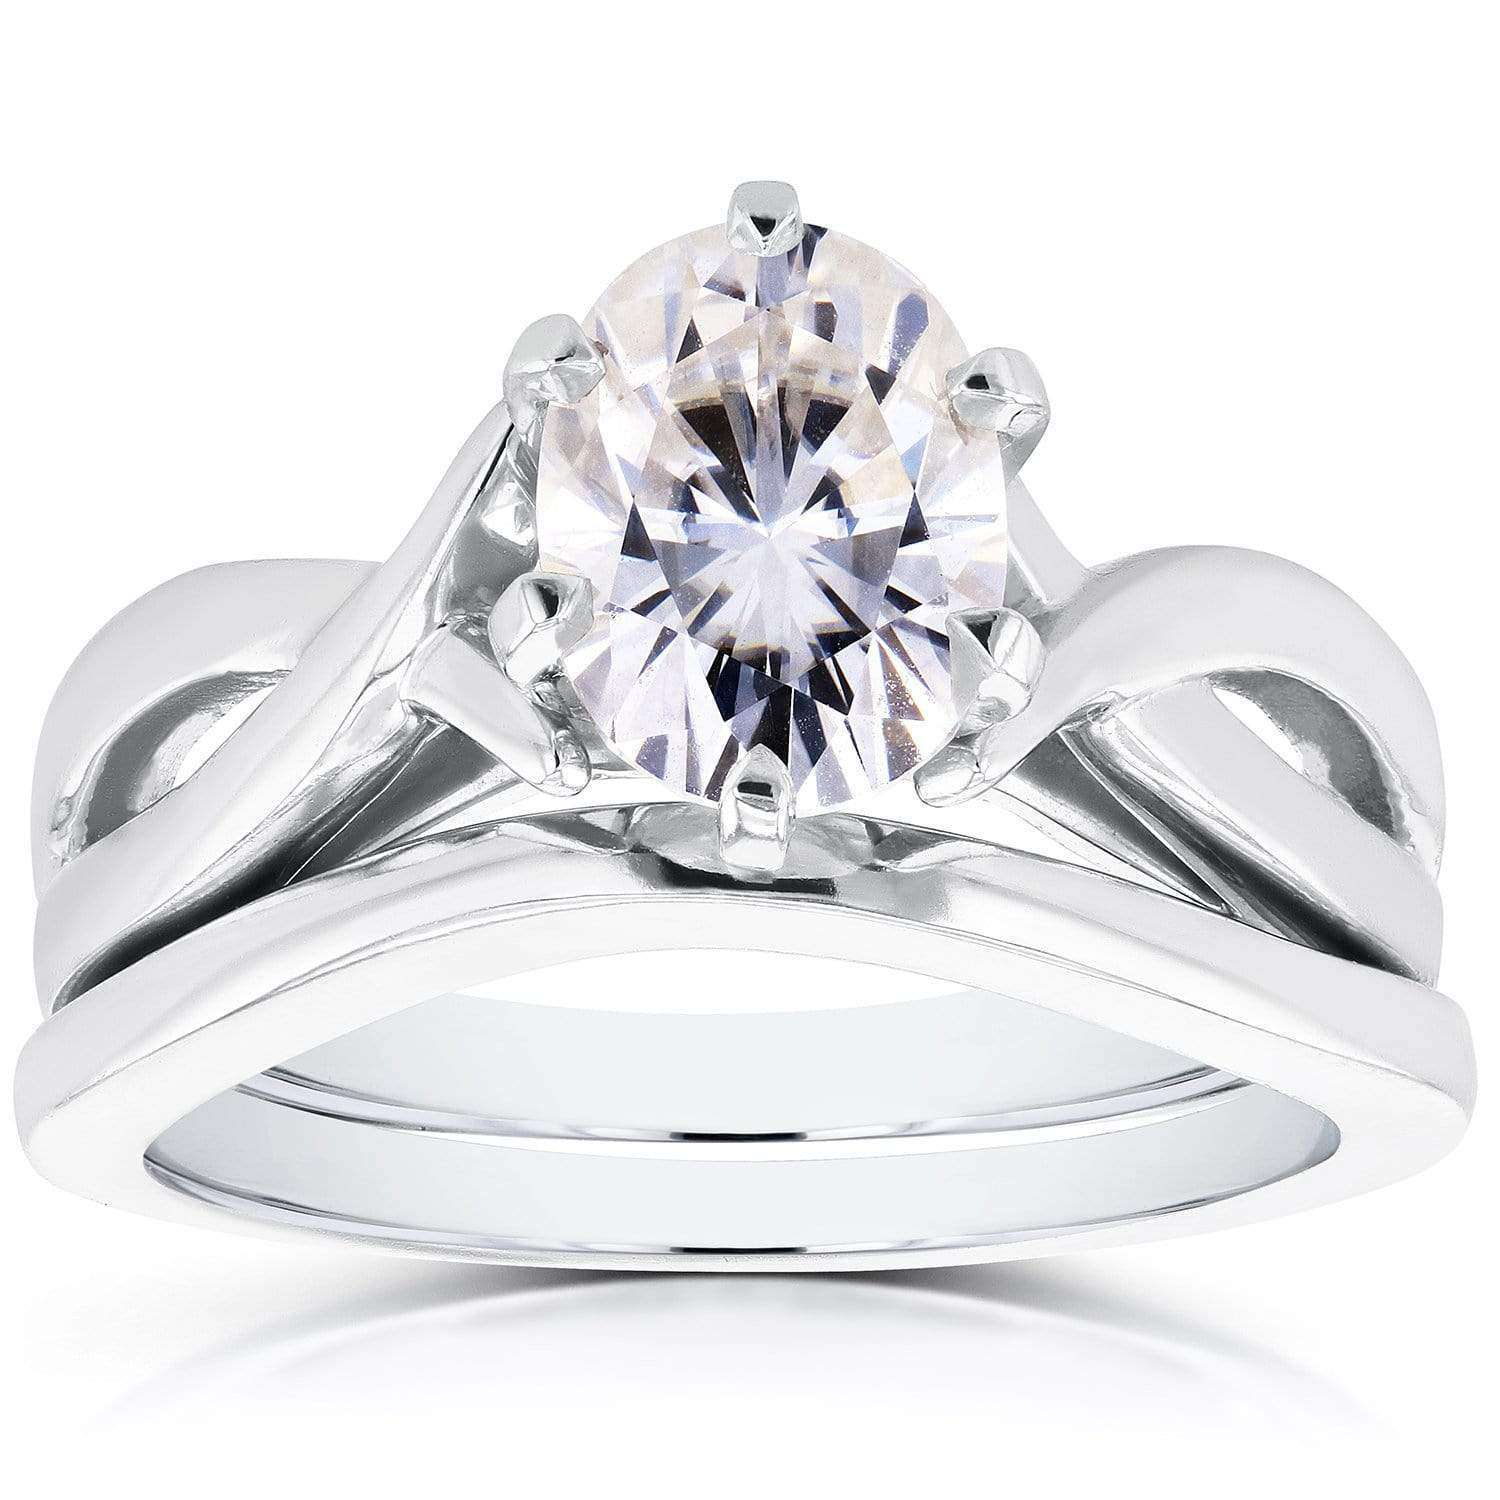 Discounts Near-Colorless (F-G) Oval Moissanite Solitaire Crossover Bridal Set 1 1/2 CTW in 14k White Gold - 9.5